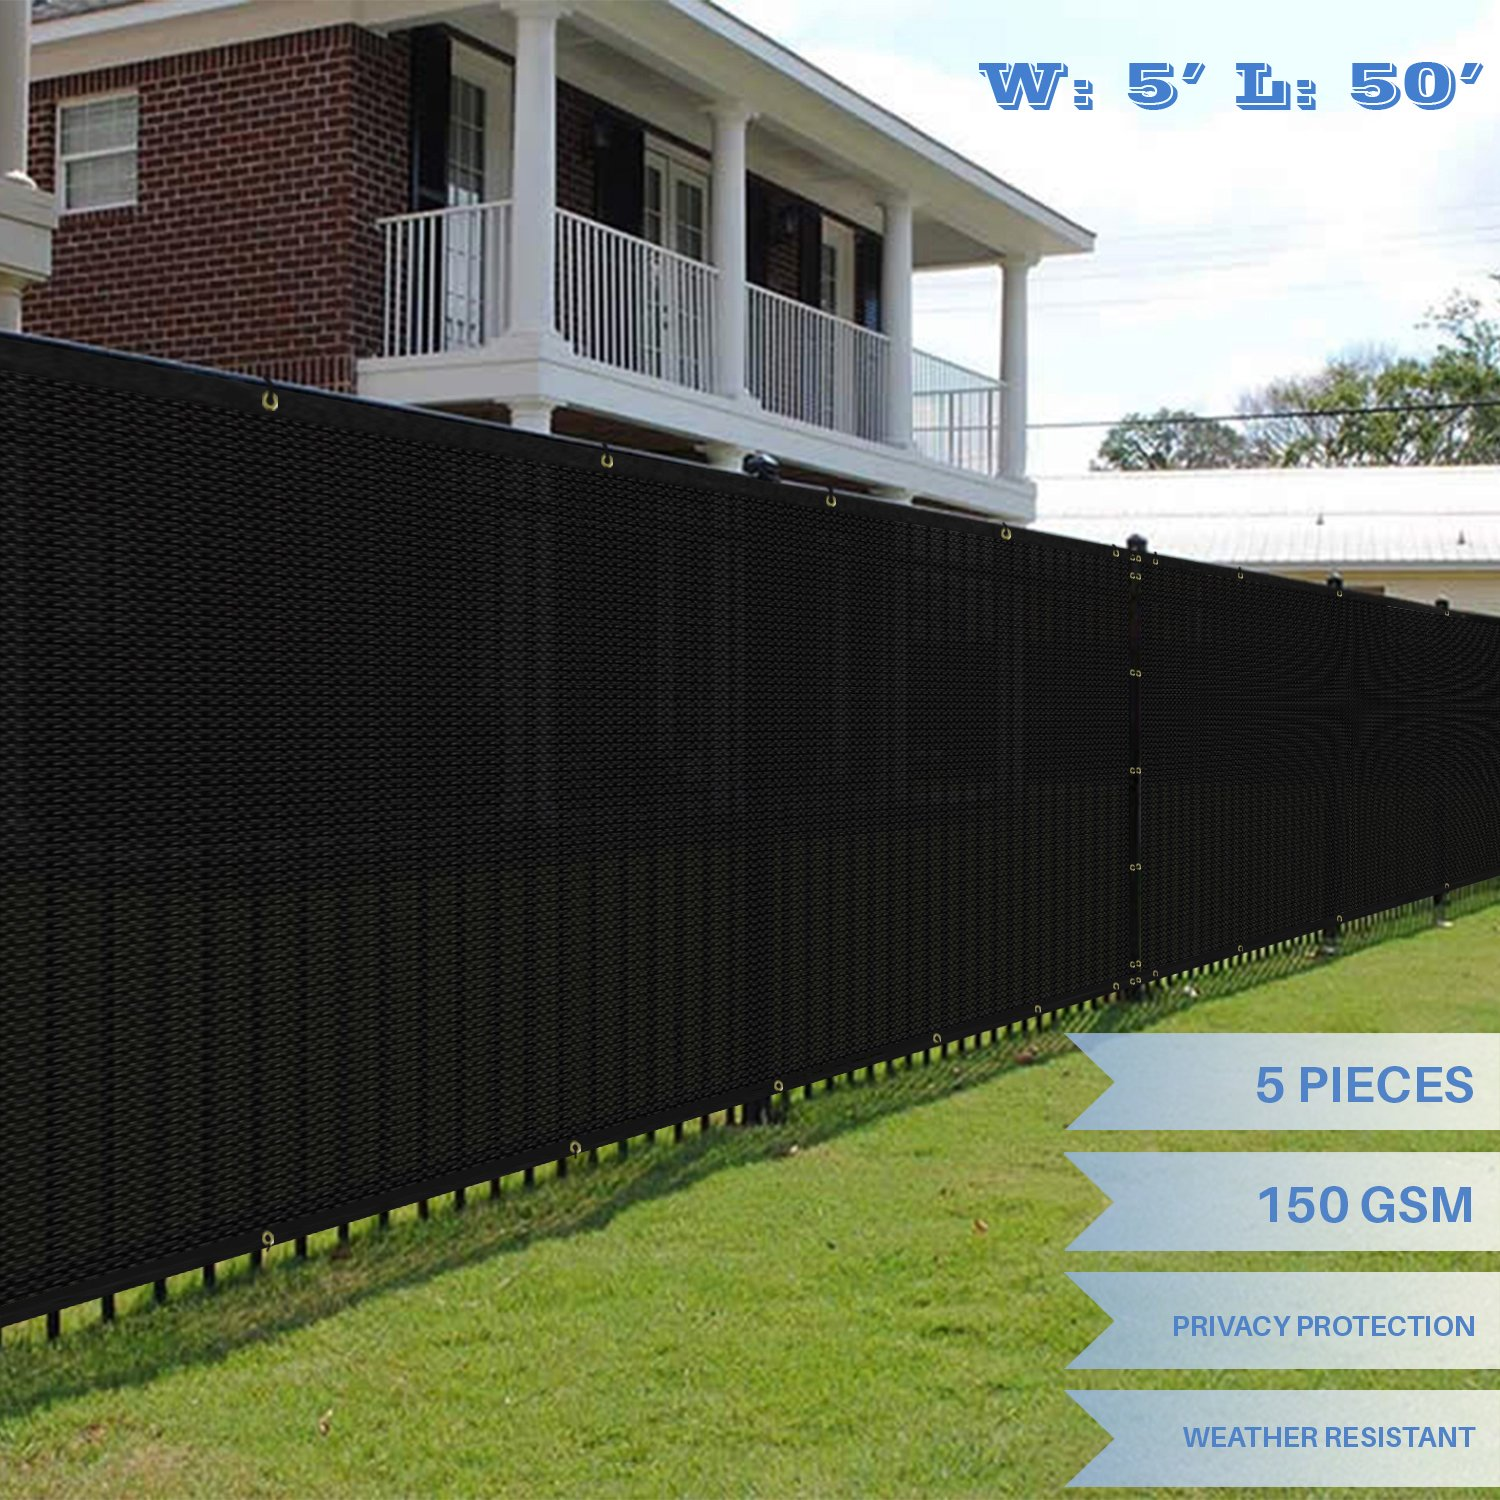 E&K Sunrise 5' x 50' Black Fence Privacy Screen, Commercial Outdoor Backyard Shade Windscreen Mesh Fabric 3 Years Warranty (Customized Sizes Available) - Set of 5